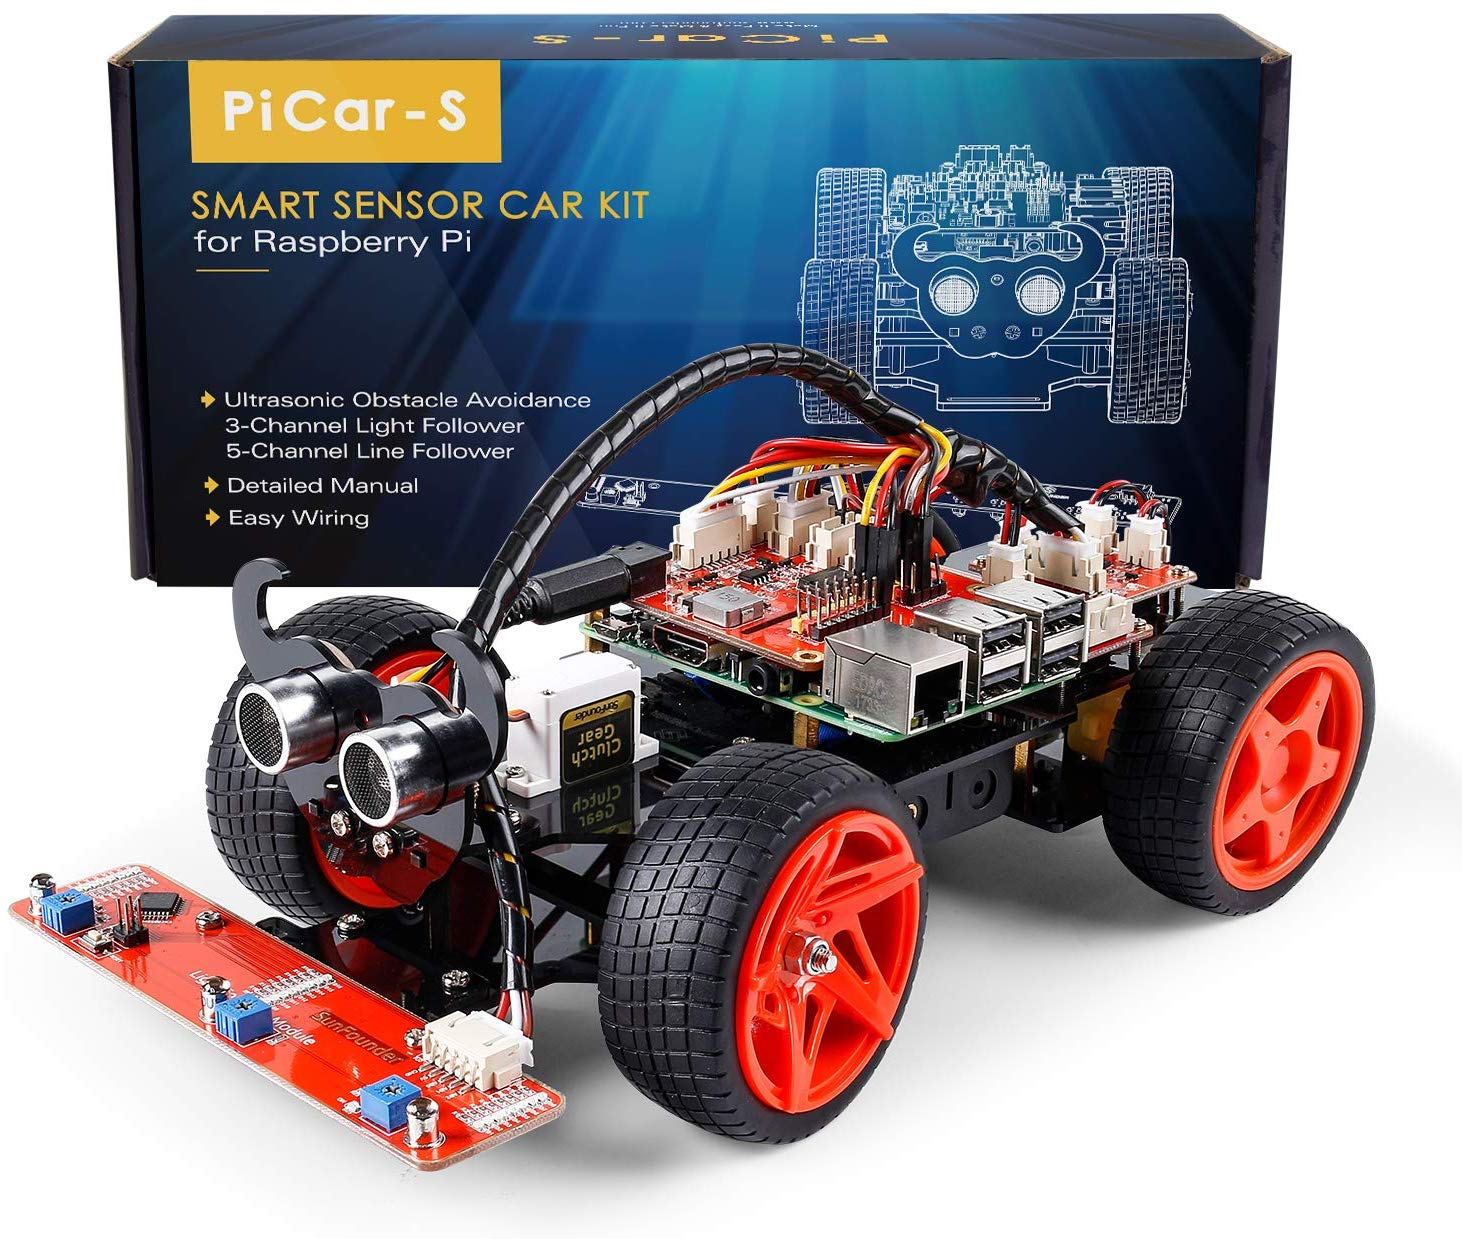 10 Best selling Raspberry Pi Robot Kits in 2021